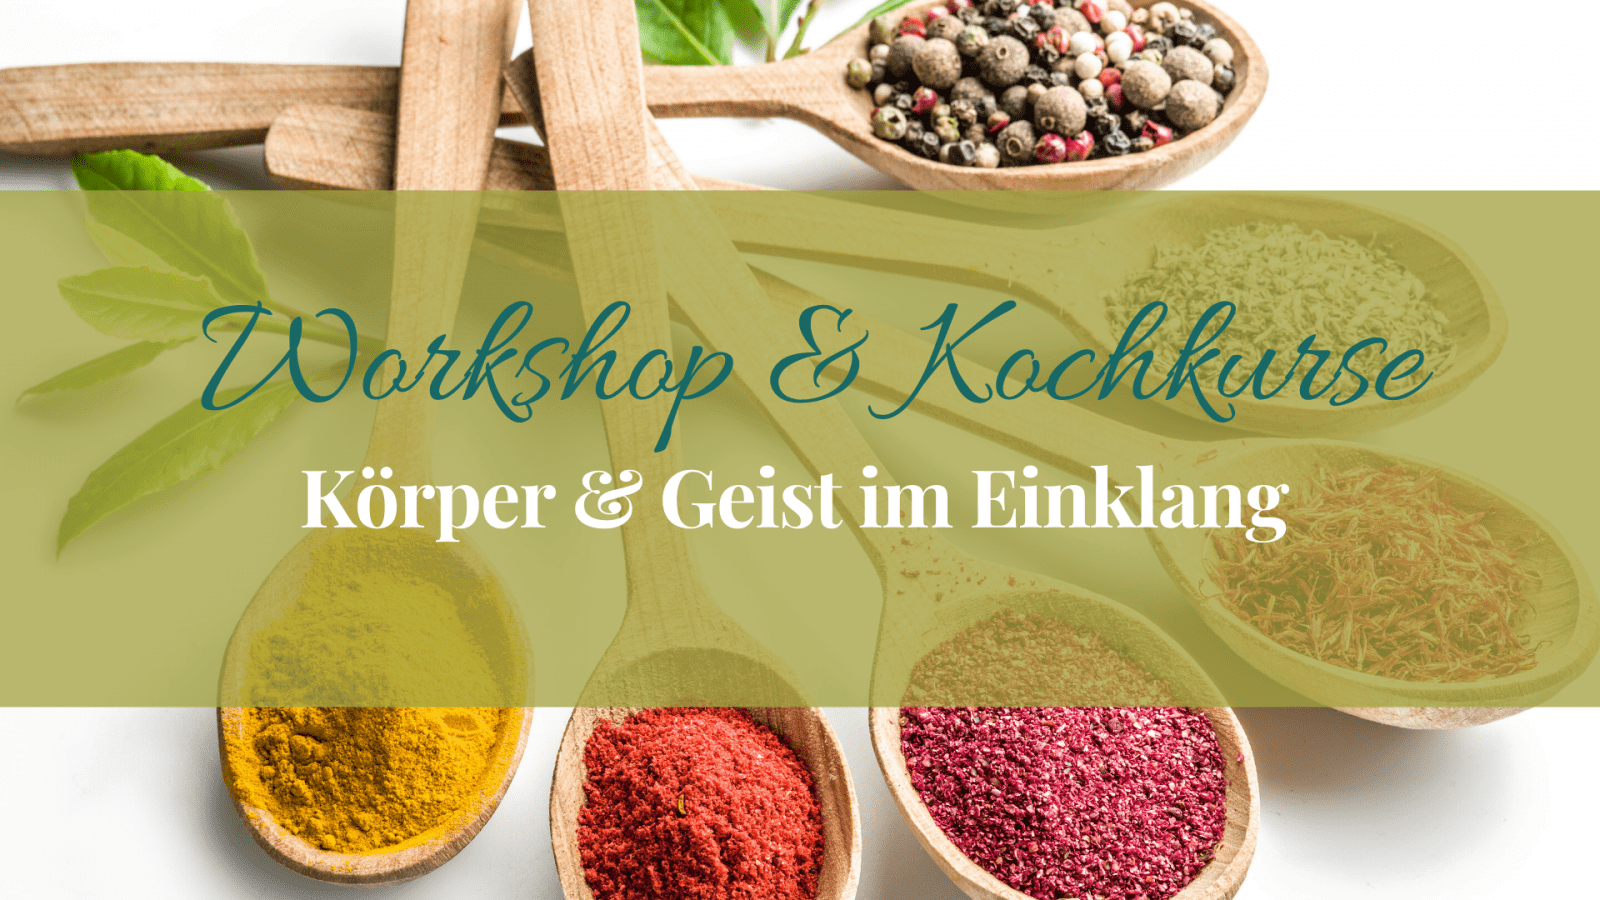 Workshop & Kochkurs